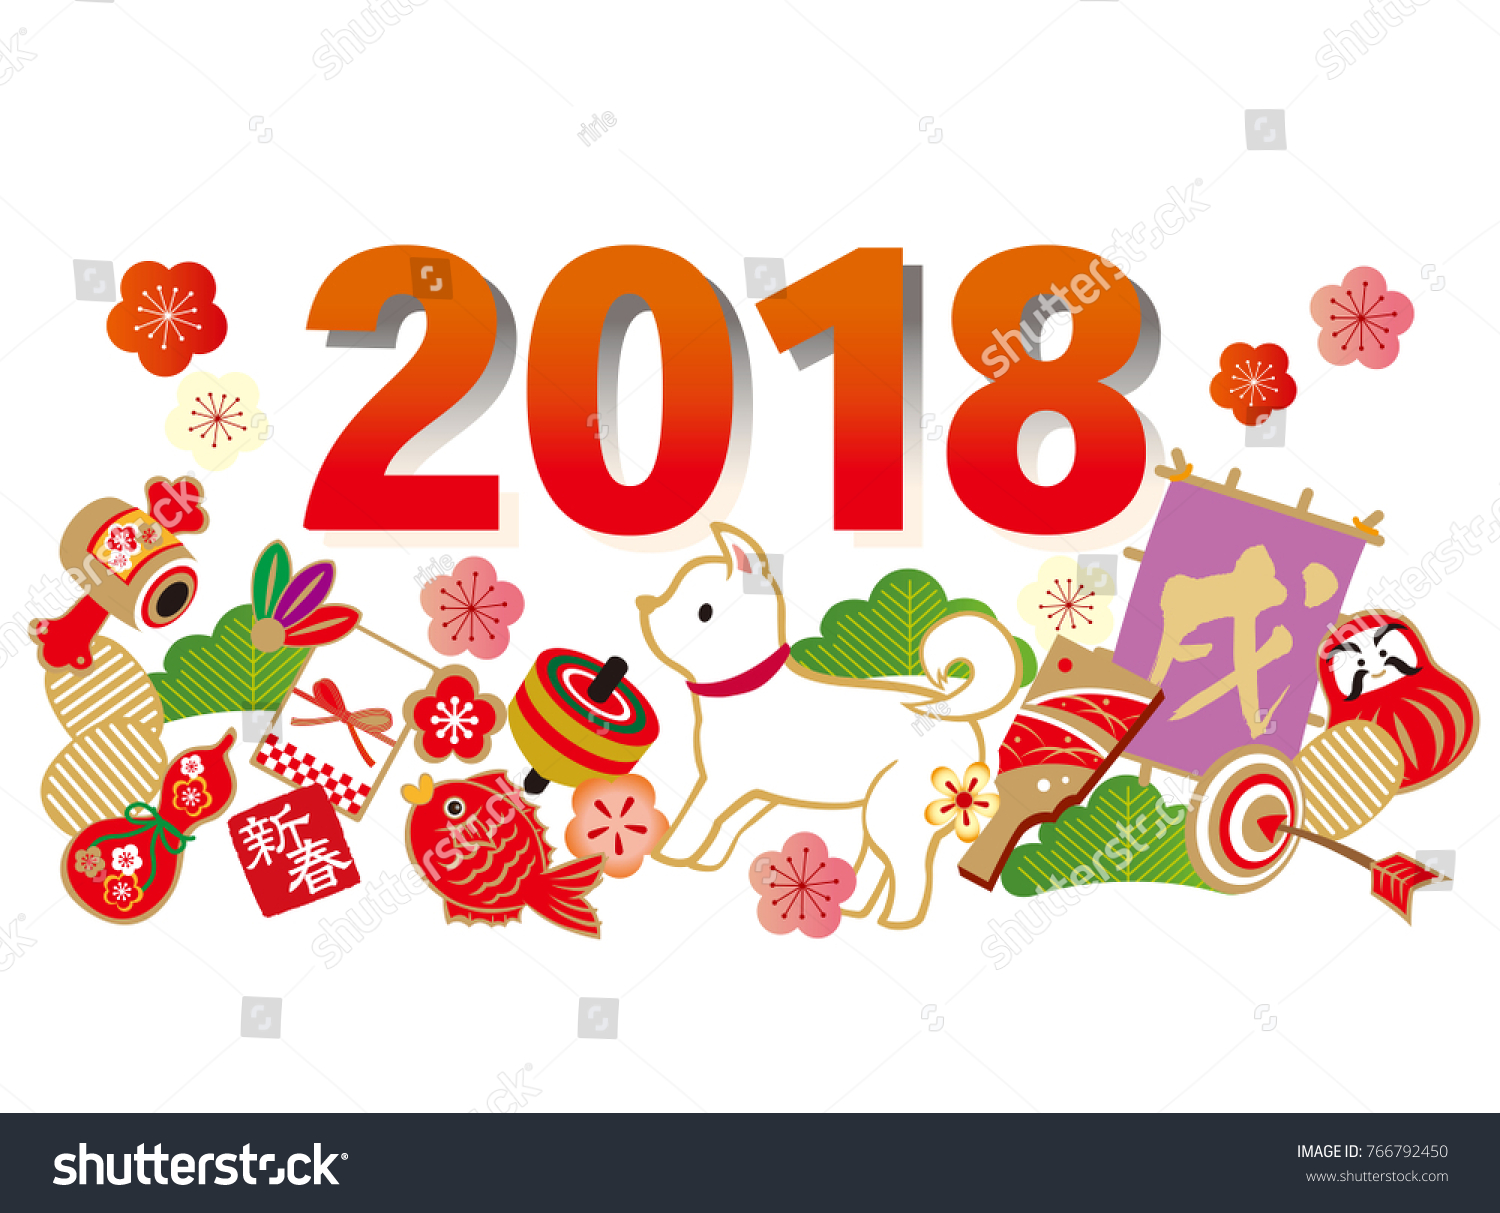 Japanese printcraft new years cards 2018 stock vector royalty free japanese printcraft new years cards 2018 the happy new year in i write it as m4hsunfo